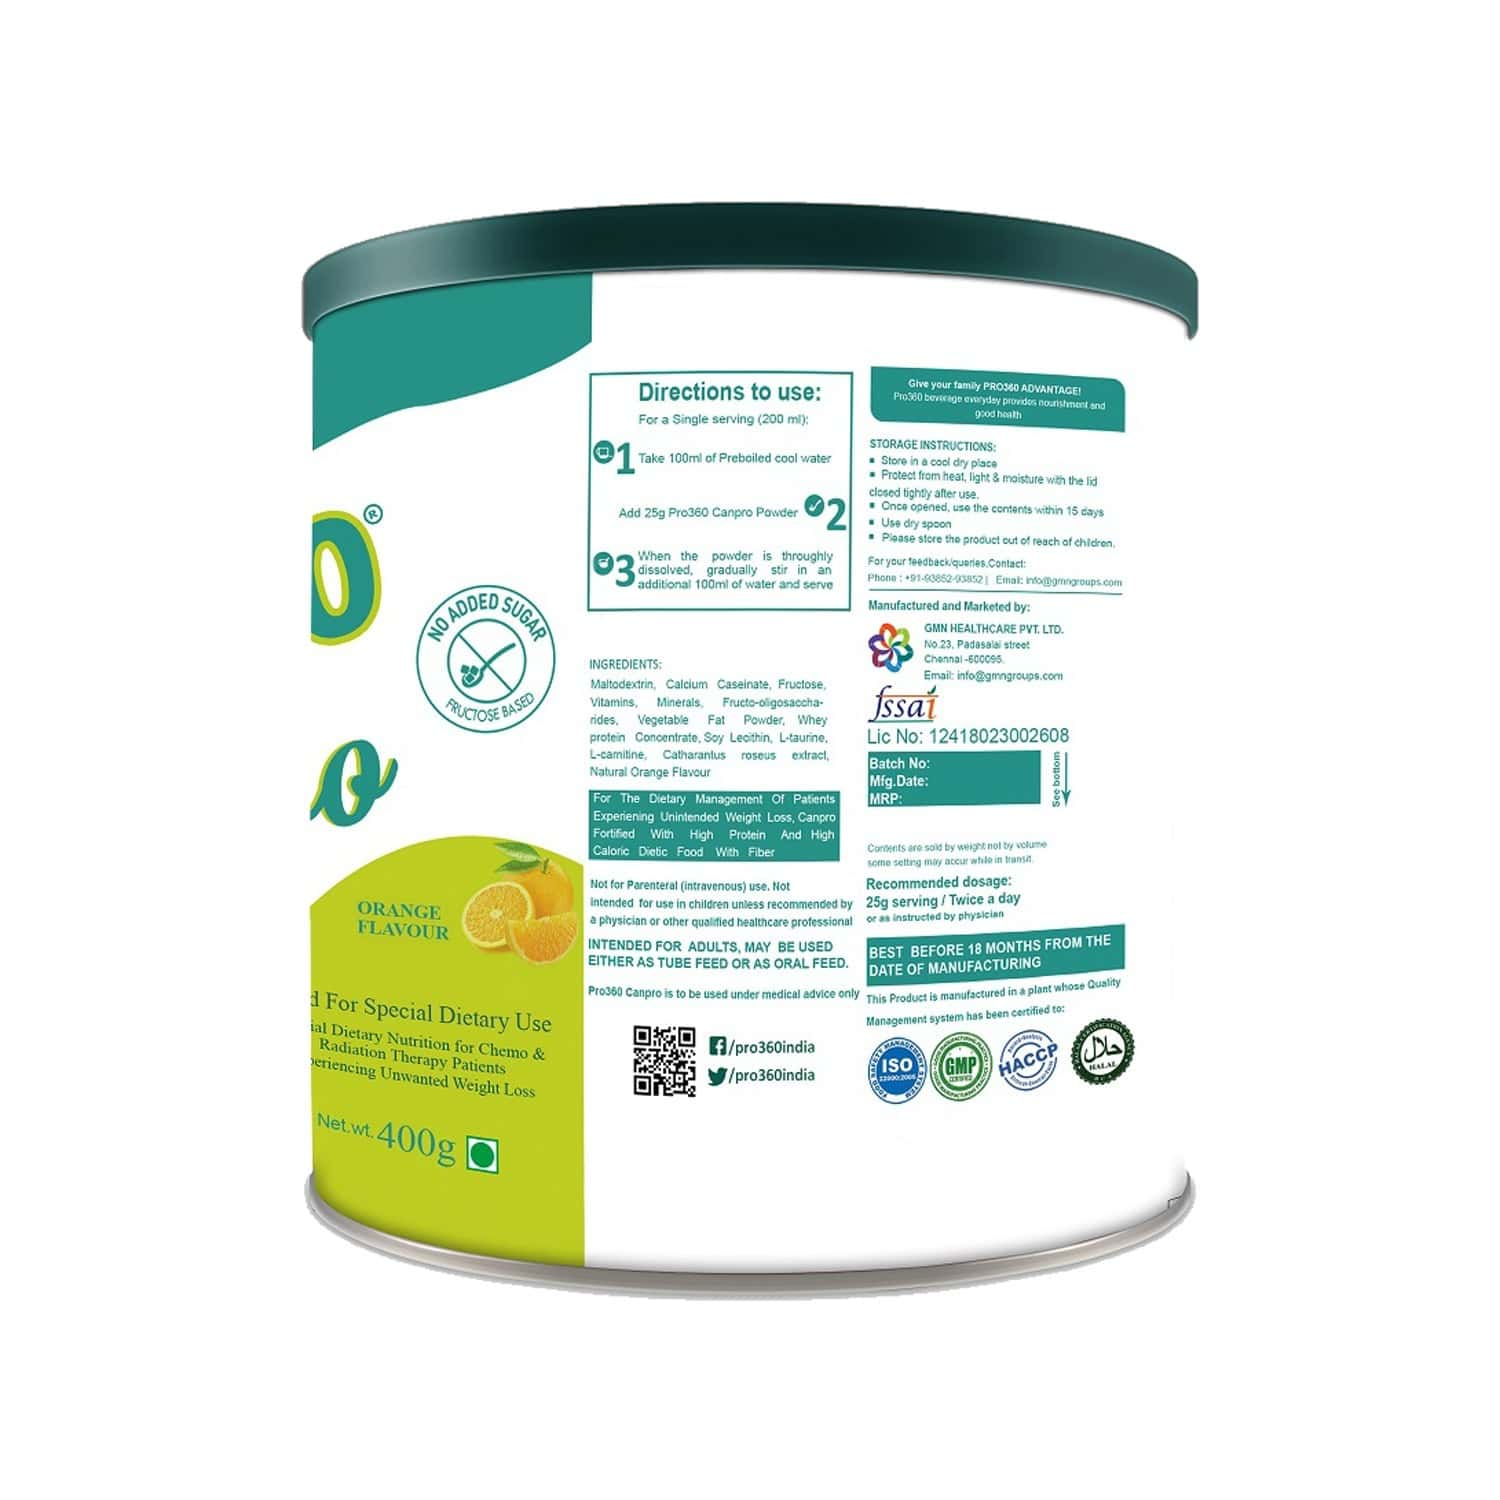 Pro360 Canpro Nutritional Supplement Powder For Onco Care - Orange Flavour - 400gm